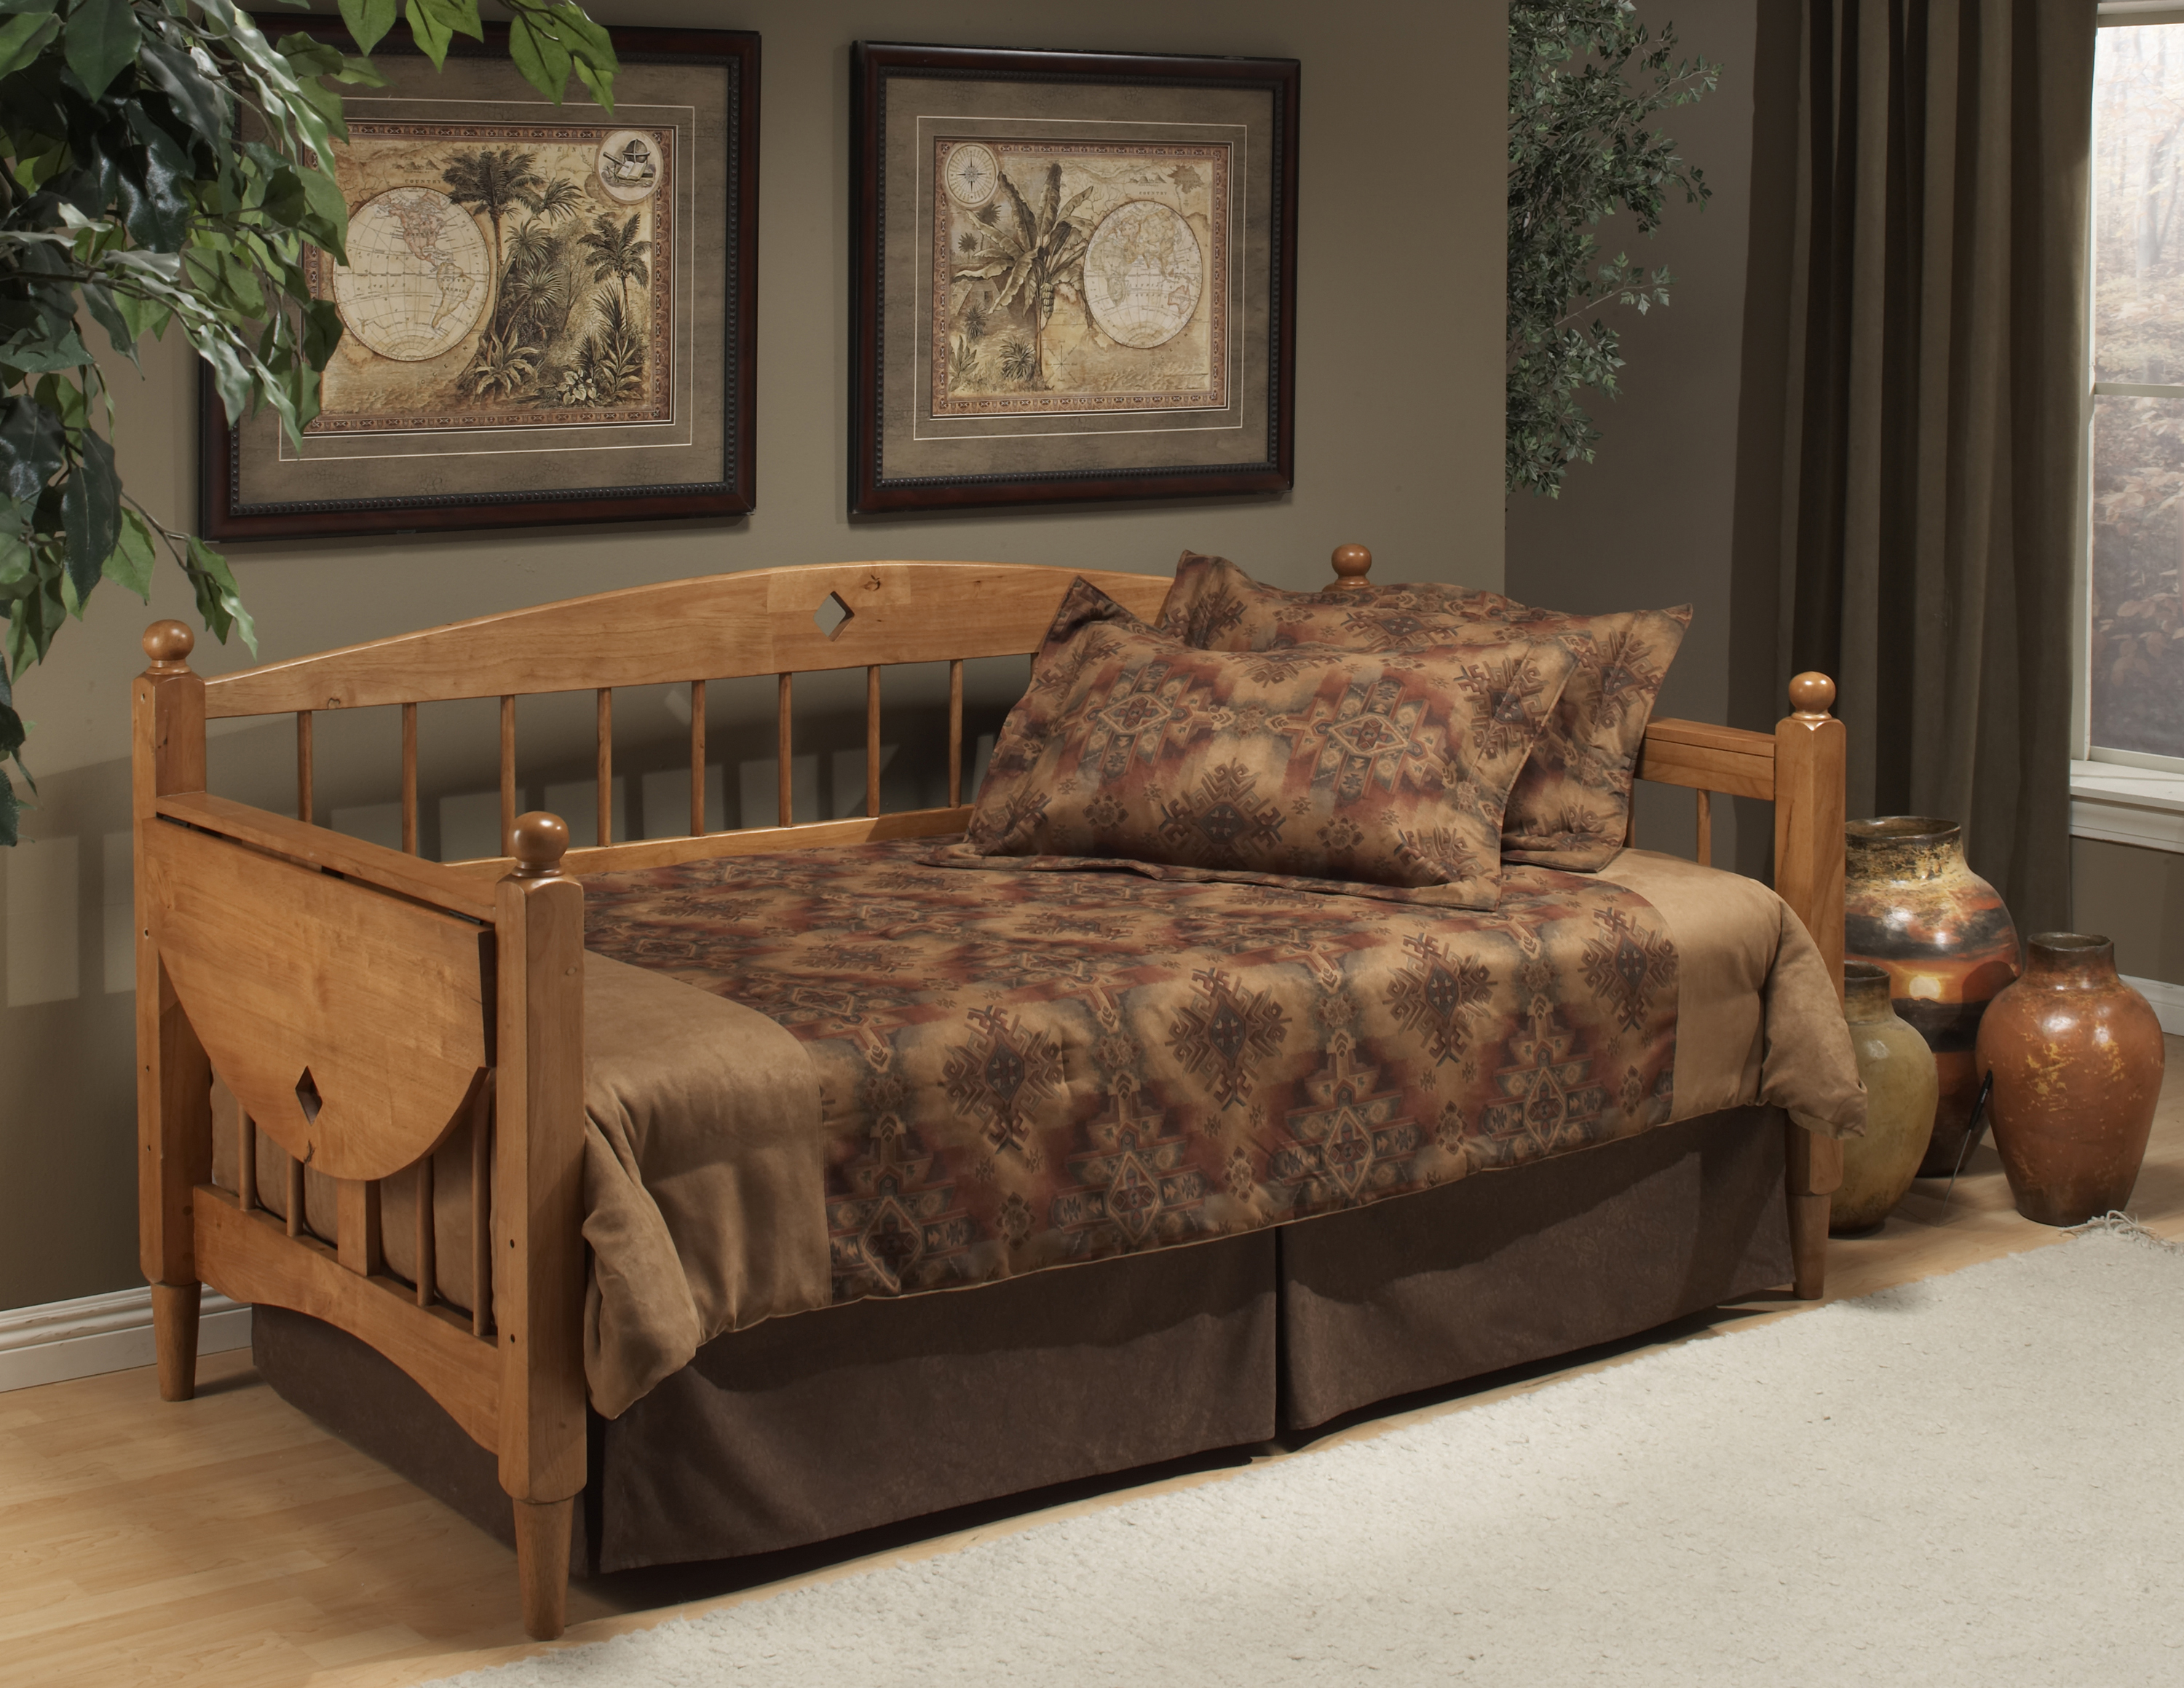 Hillsdale Daybeds Wooden Daybed with Trundle and Drop Leaf